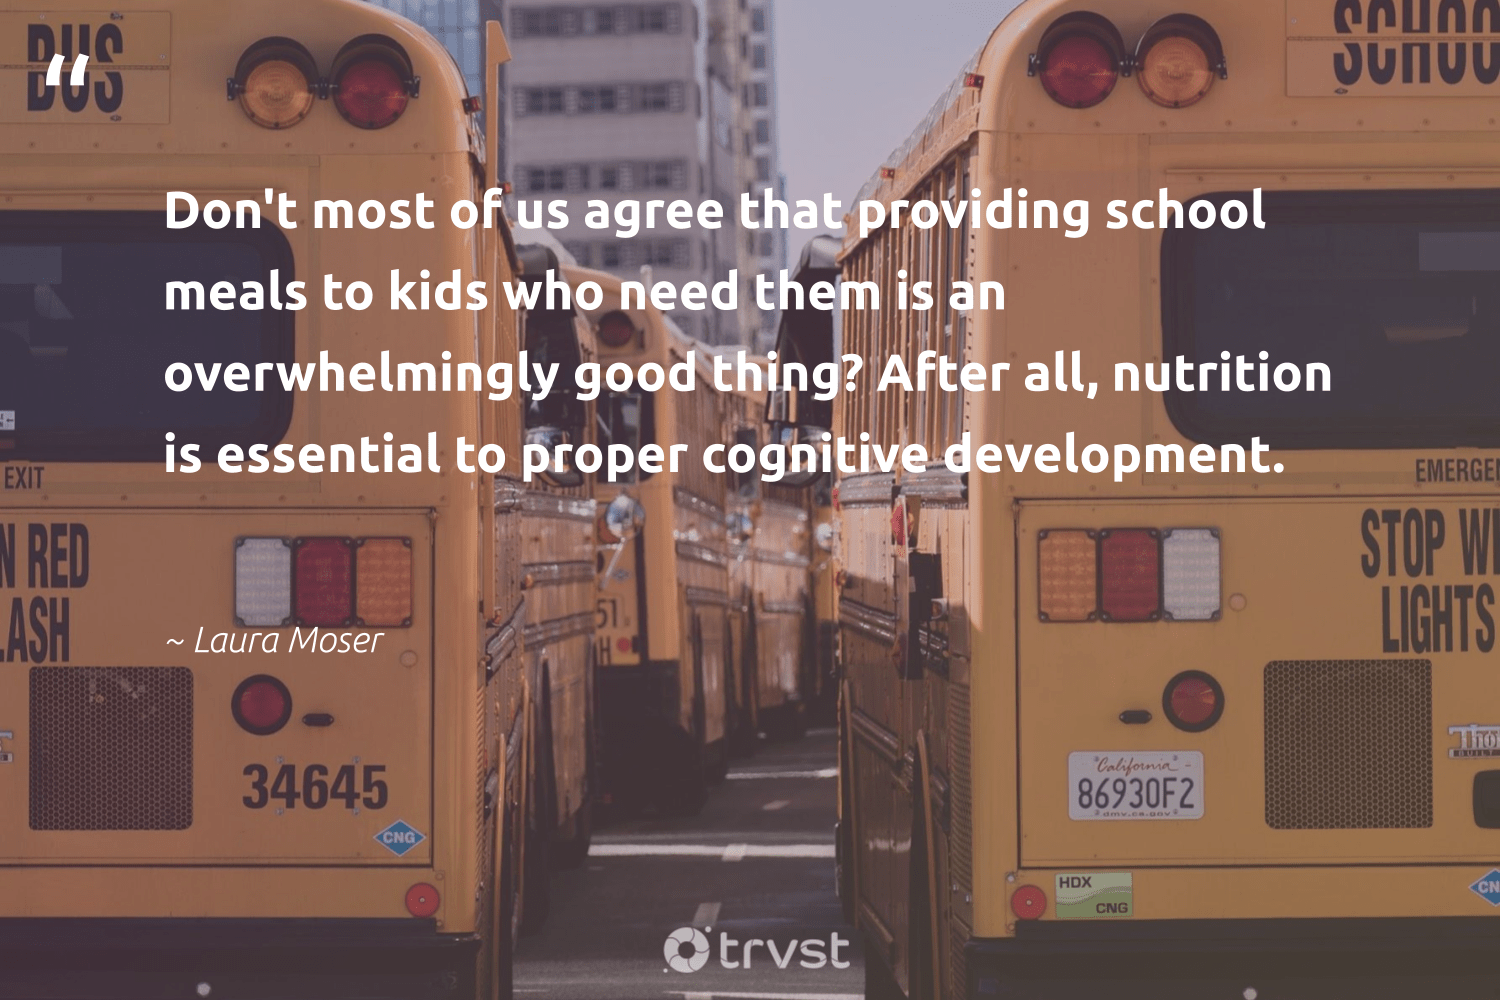 """Don't most of us agree that providing school meals to kids who need them is an overwhelmingly good thing? After all, nutrition is essential to proper cognitive development.""  - Laura Moser #trvst #quotes #eatclean #nutrition #development #healthyeating #begreat #nevergiveup #bethechange #healthyfood #mindset #changemakers"